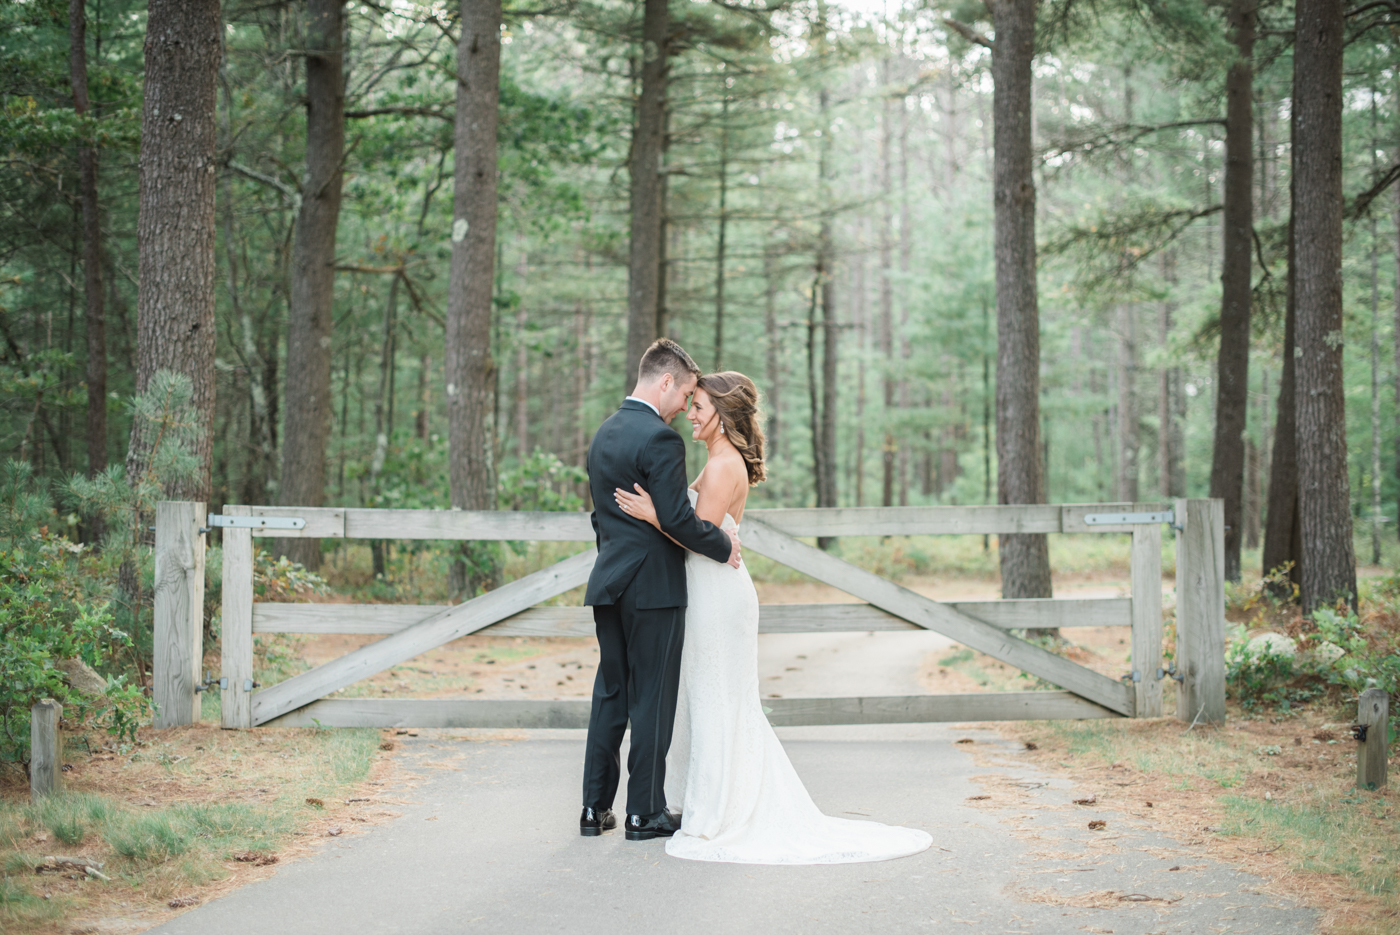 Country Club Wedding in Massachusetts